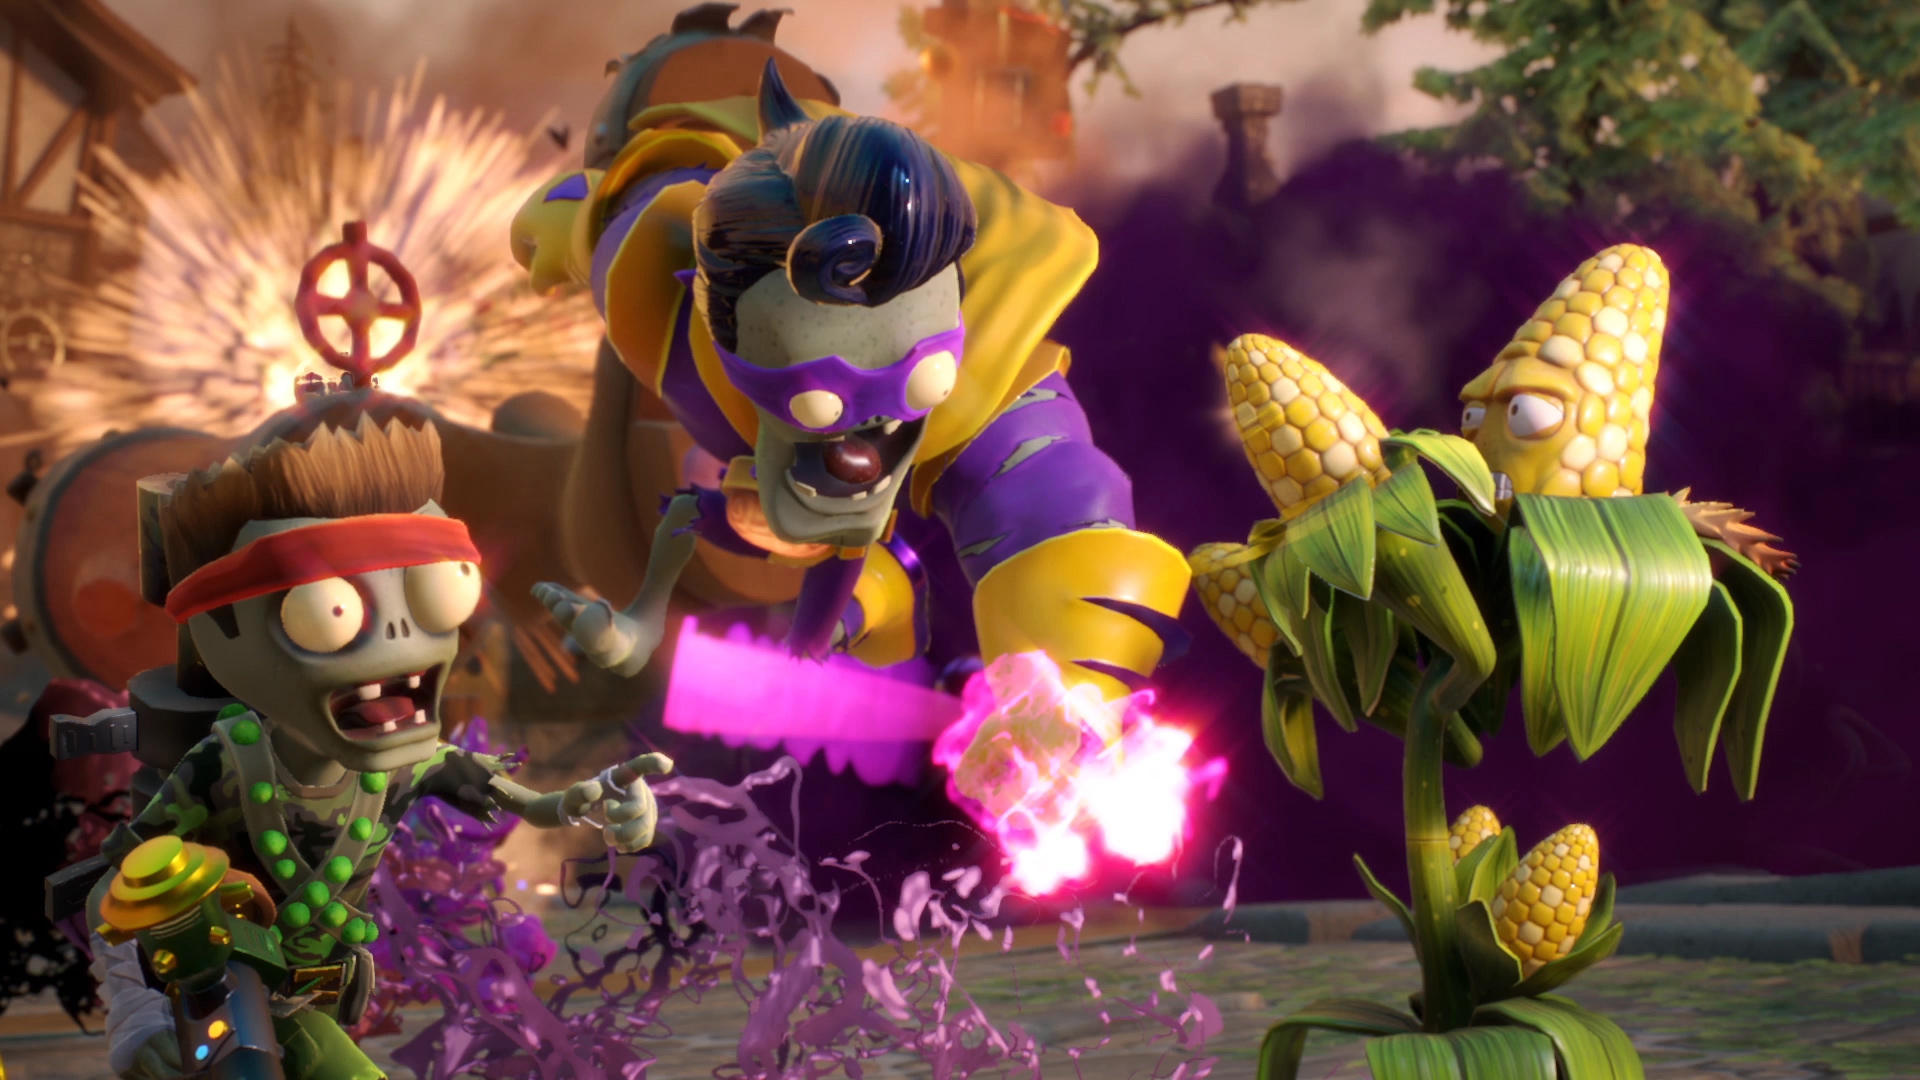 Plants vs zombies garden warfare 2 is bigger badder Plants vs zombies garden warfare 2 event calendar